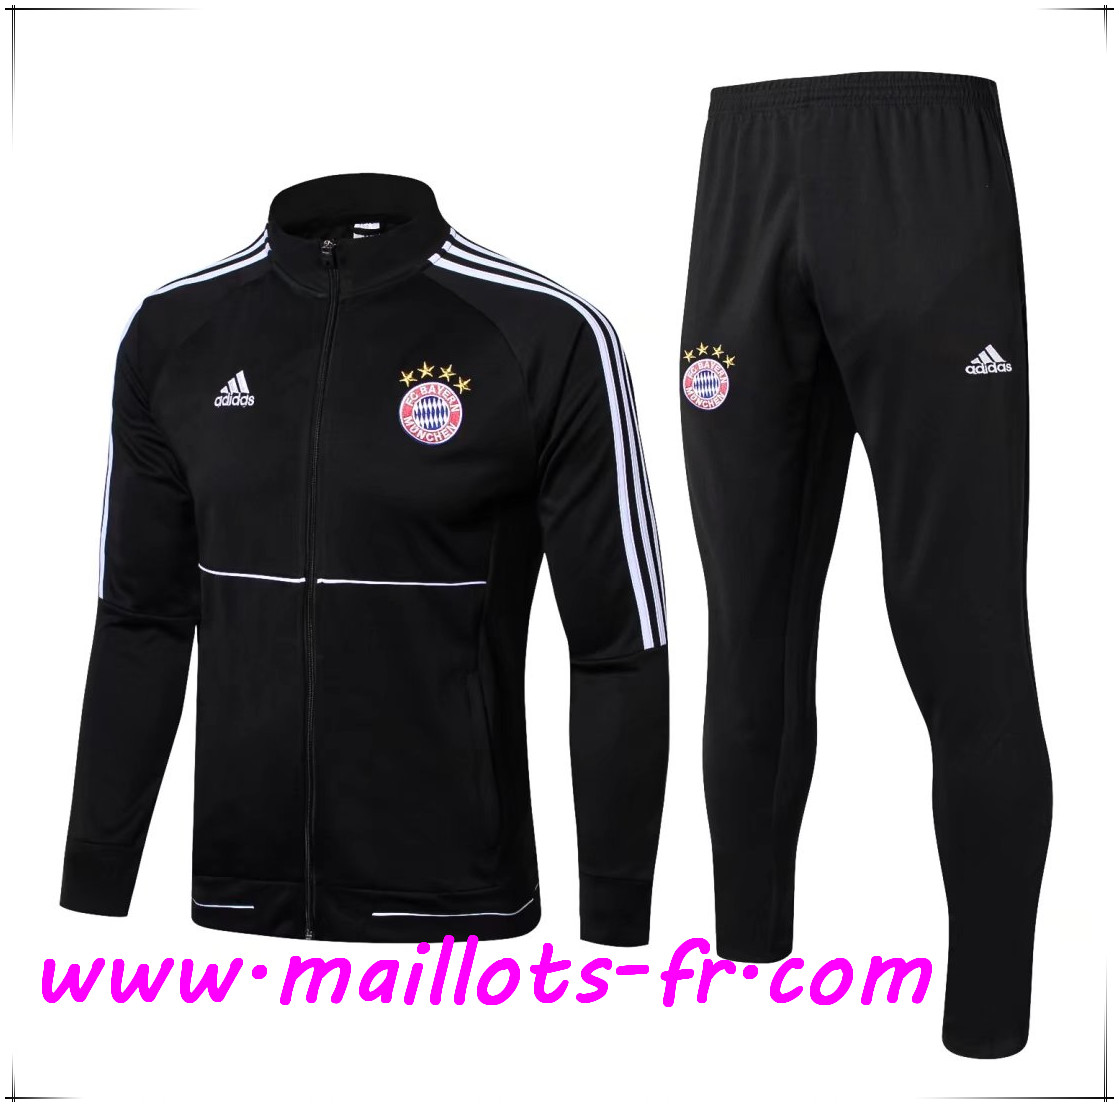 Maillots-fr Thailande Survetement de Foot - Veste Bayern Munich Noir Ensemble 2017/2018